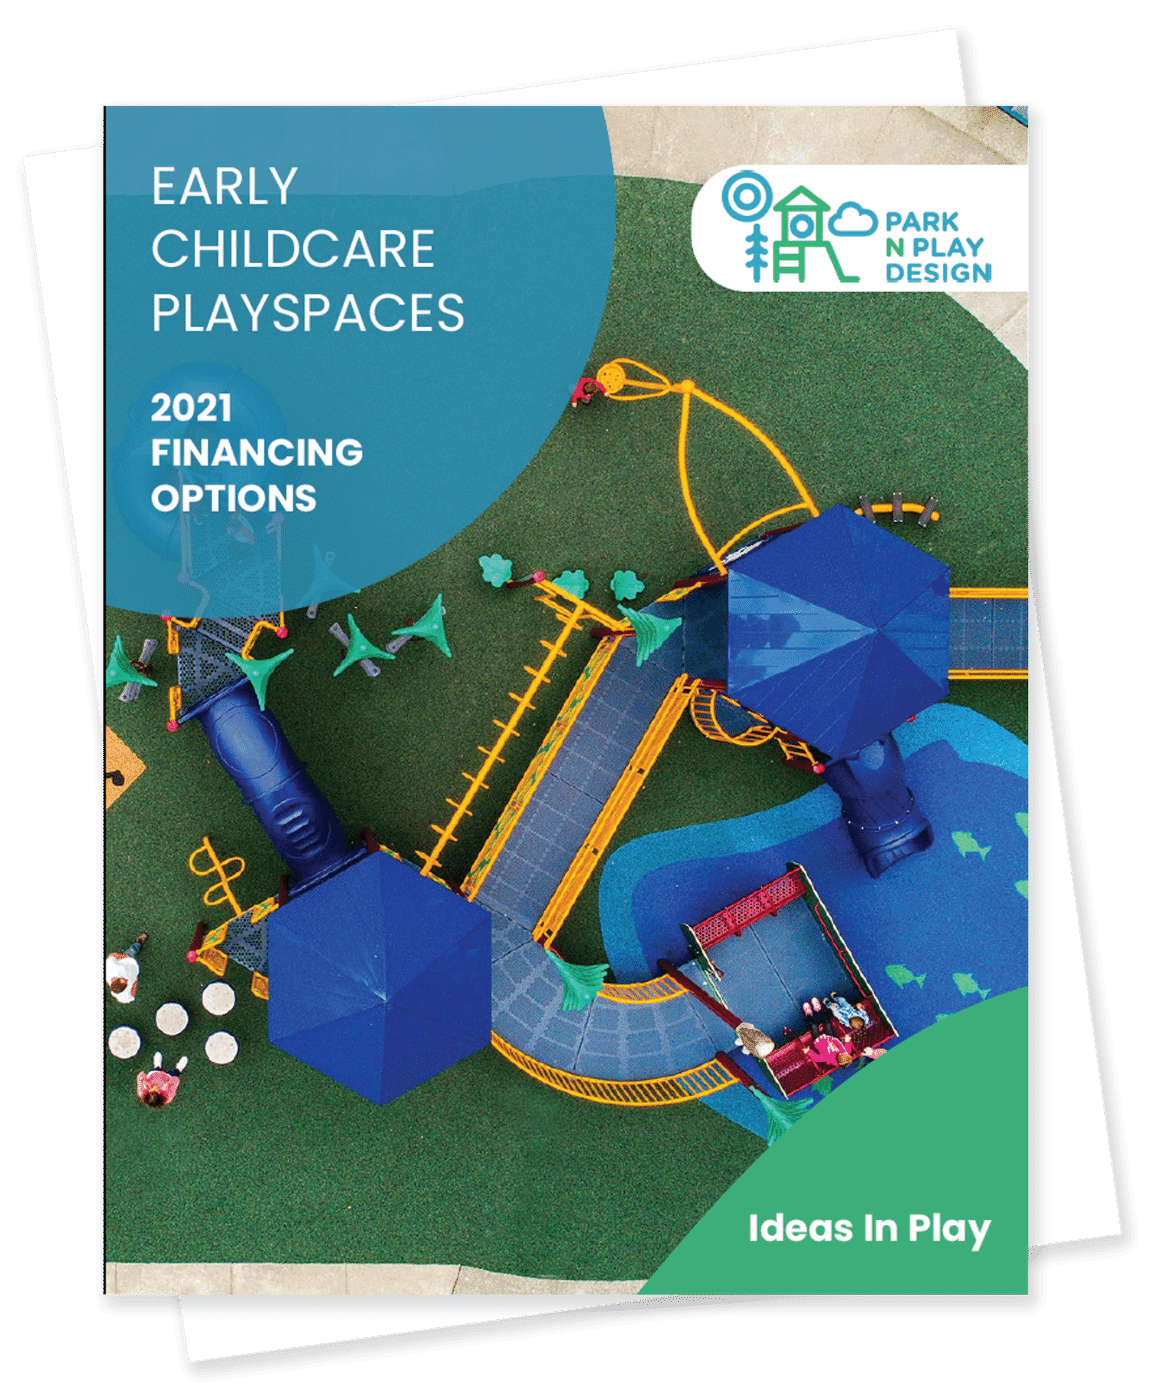 Early childcare playscapes front cover